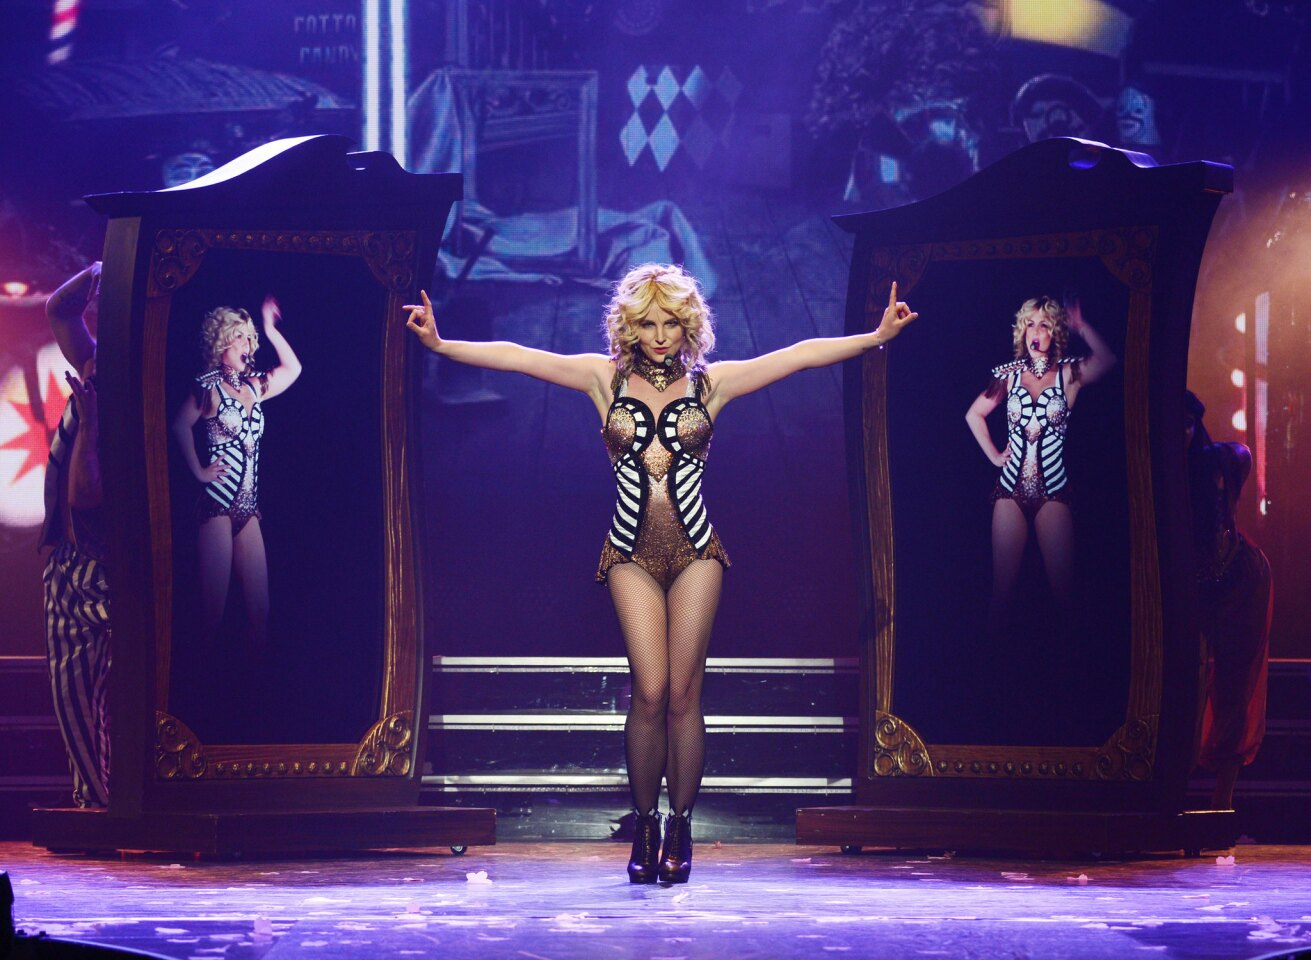 Musicians' onstage snafus | Britney Spears